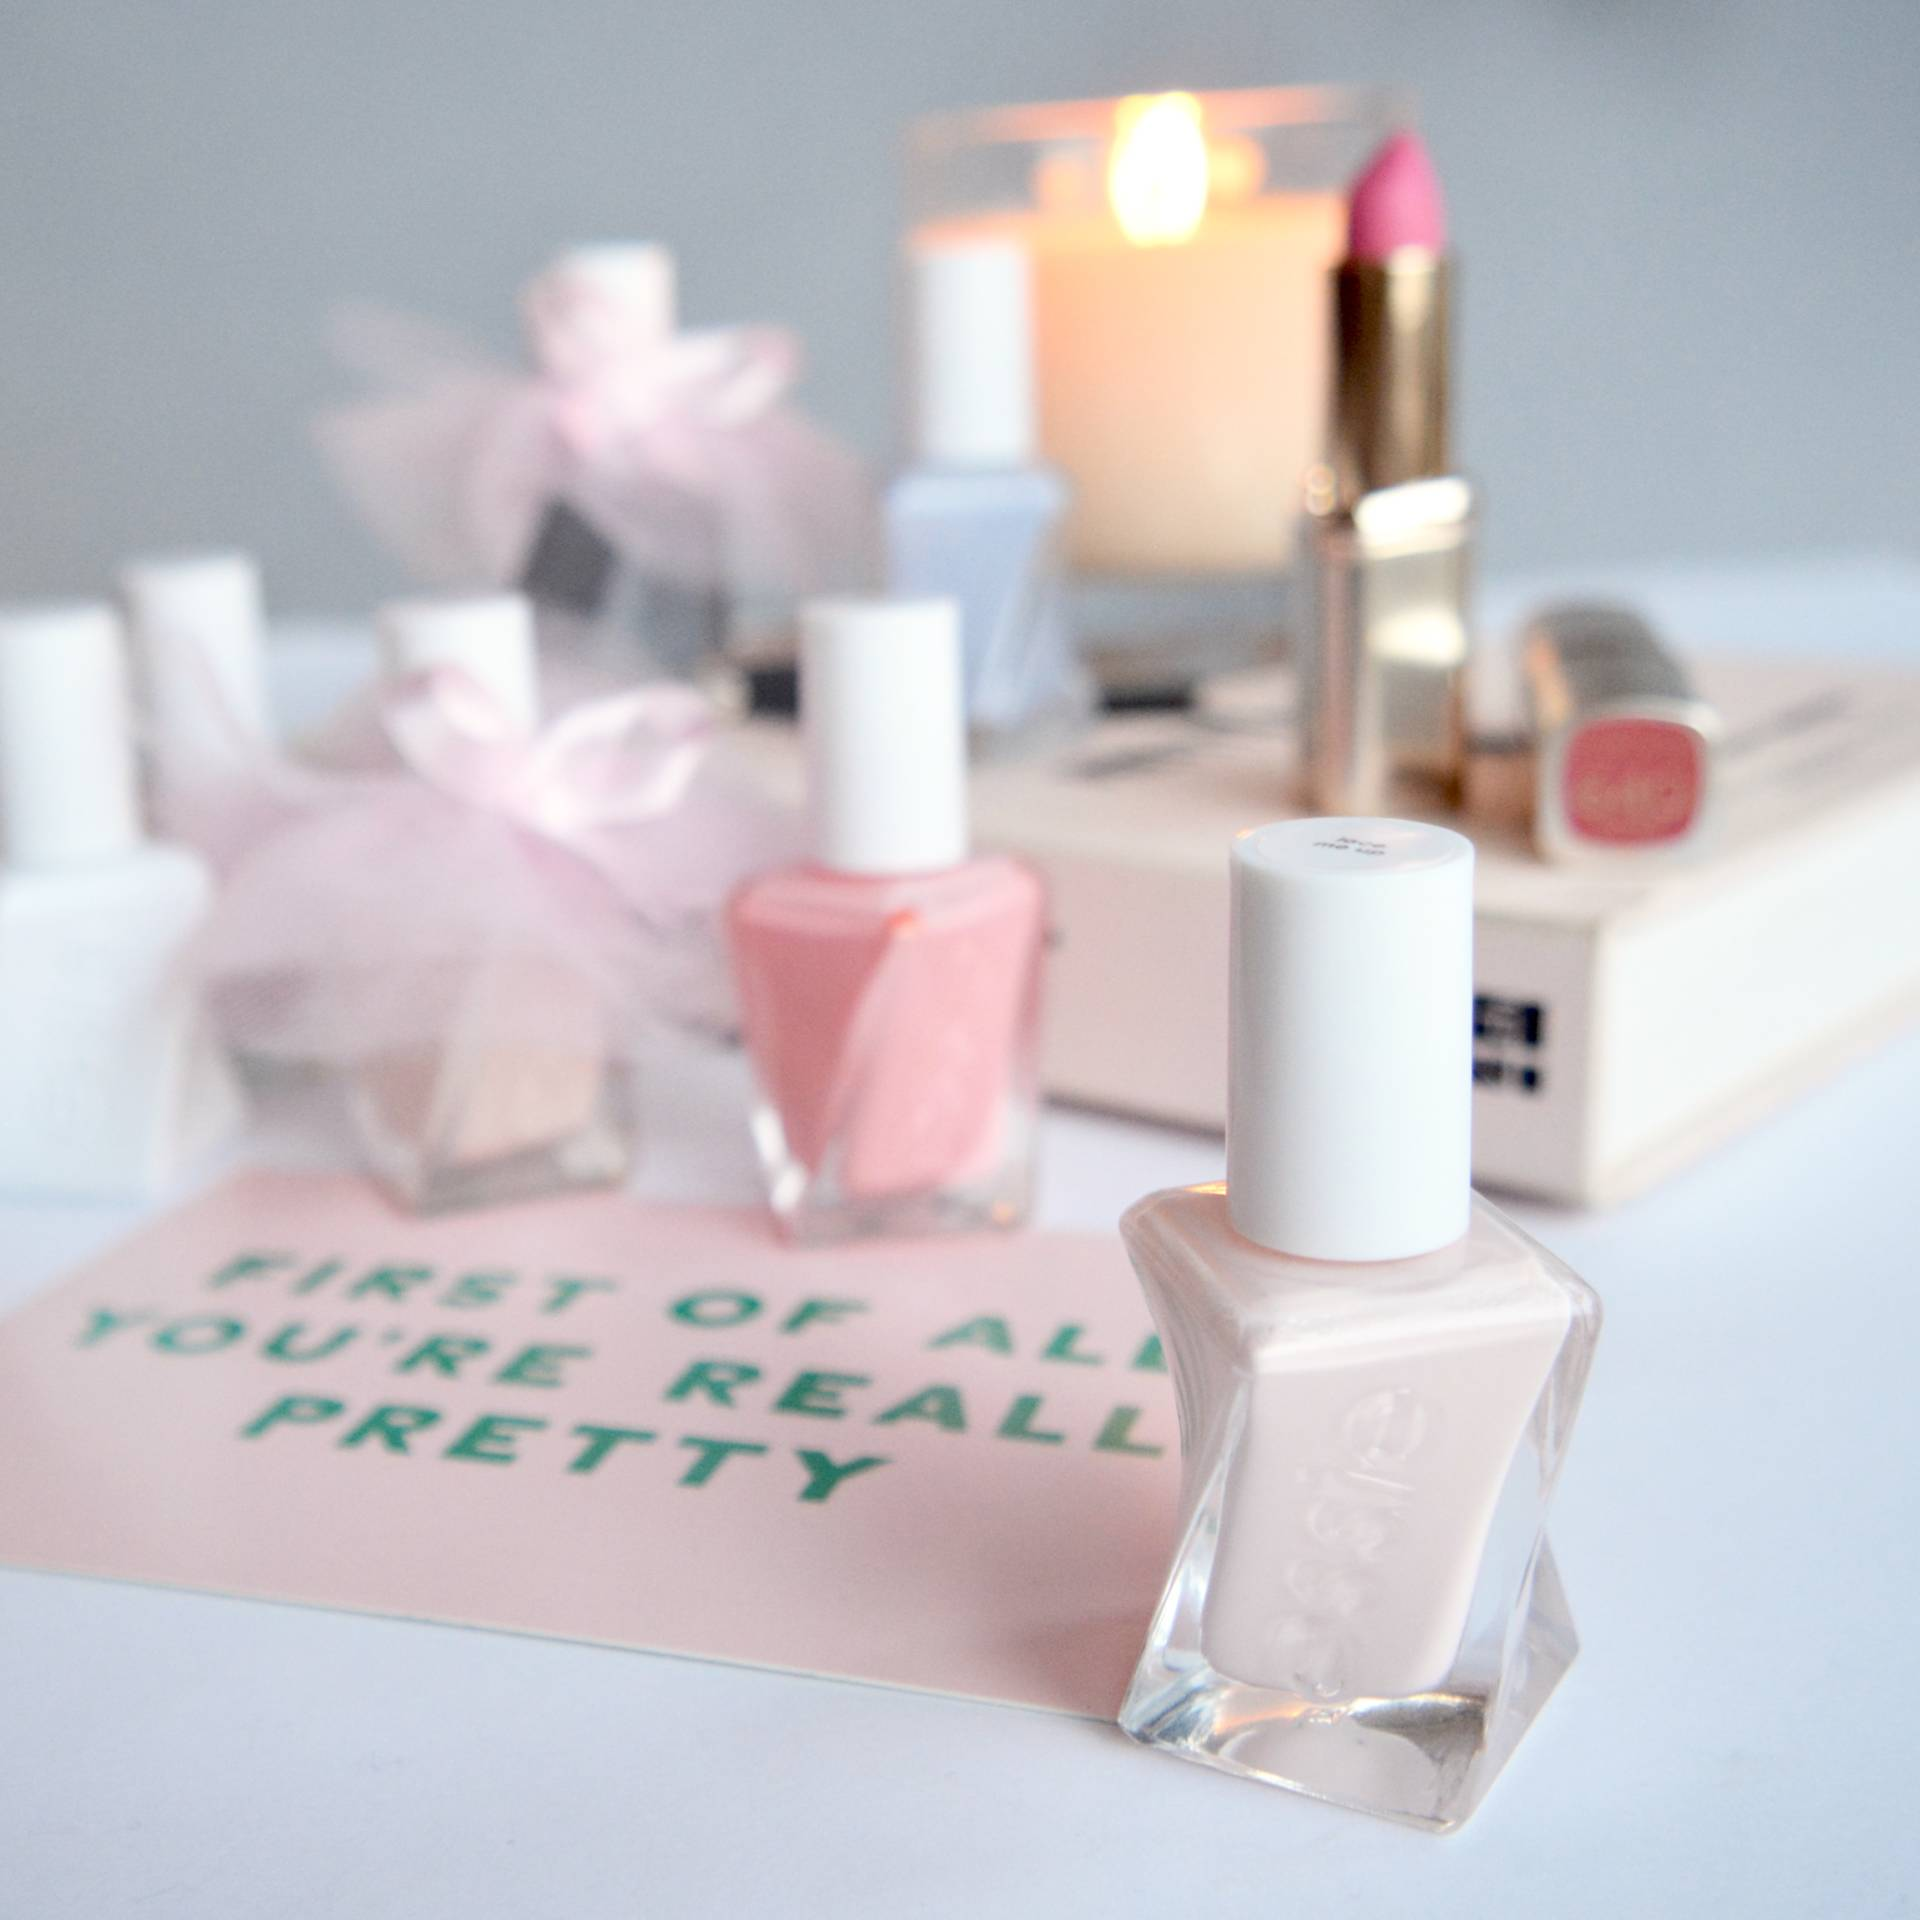 Bourjois French Manicure Kit Superdrug- HireAbility